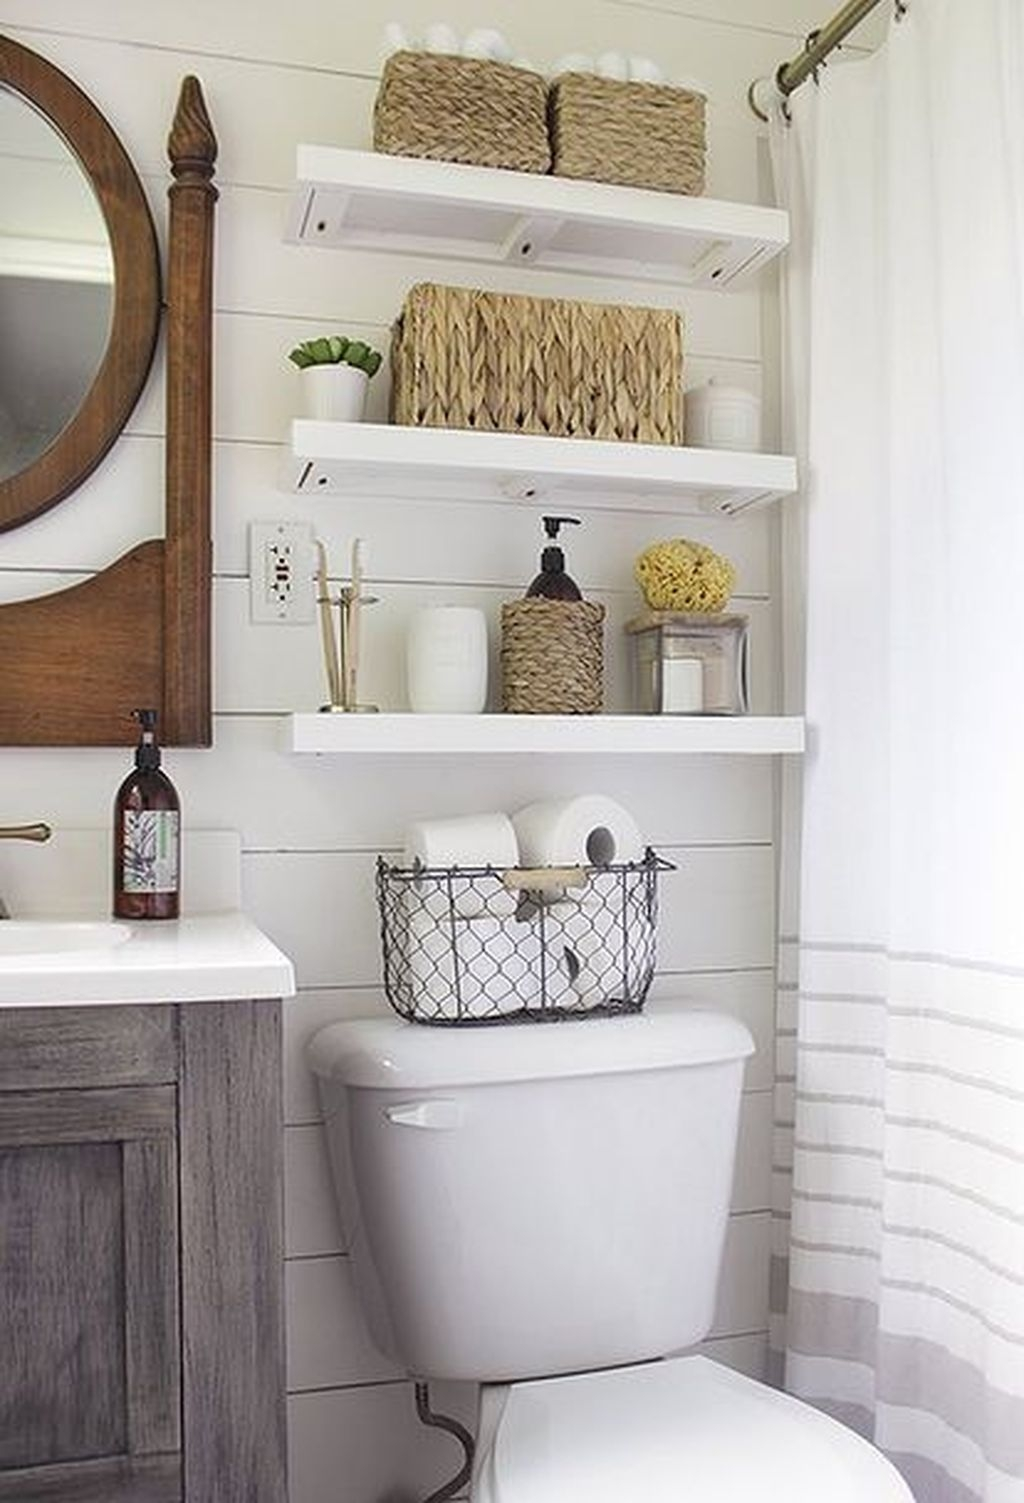 39 Cool And Stylish Small Bathroom Design Ideas05